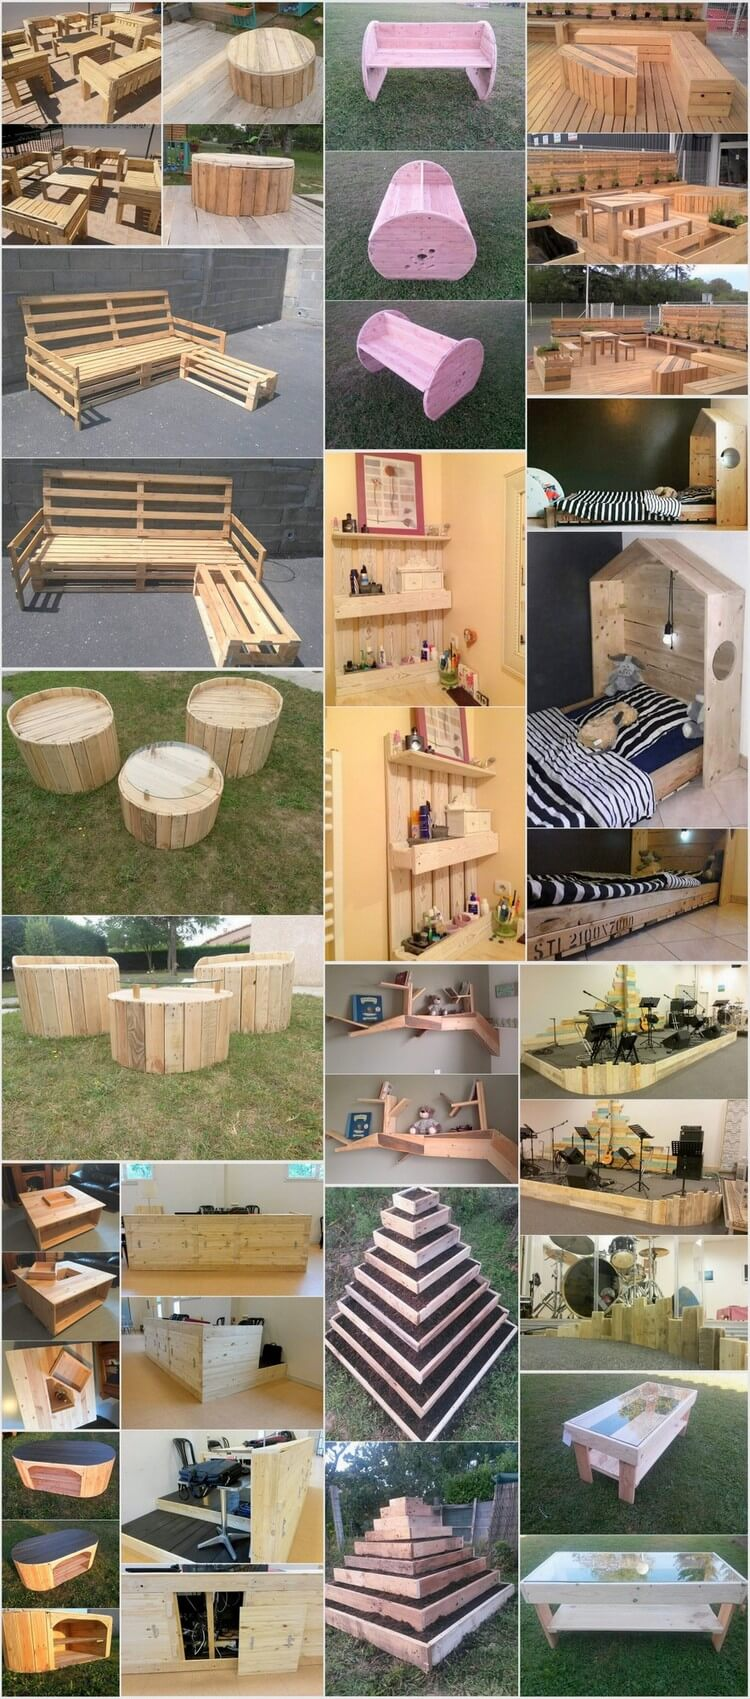 Prodigious Ideas of Wooden Pallet Recycling